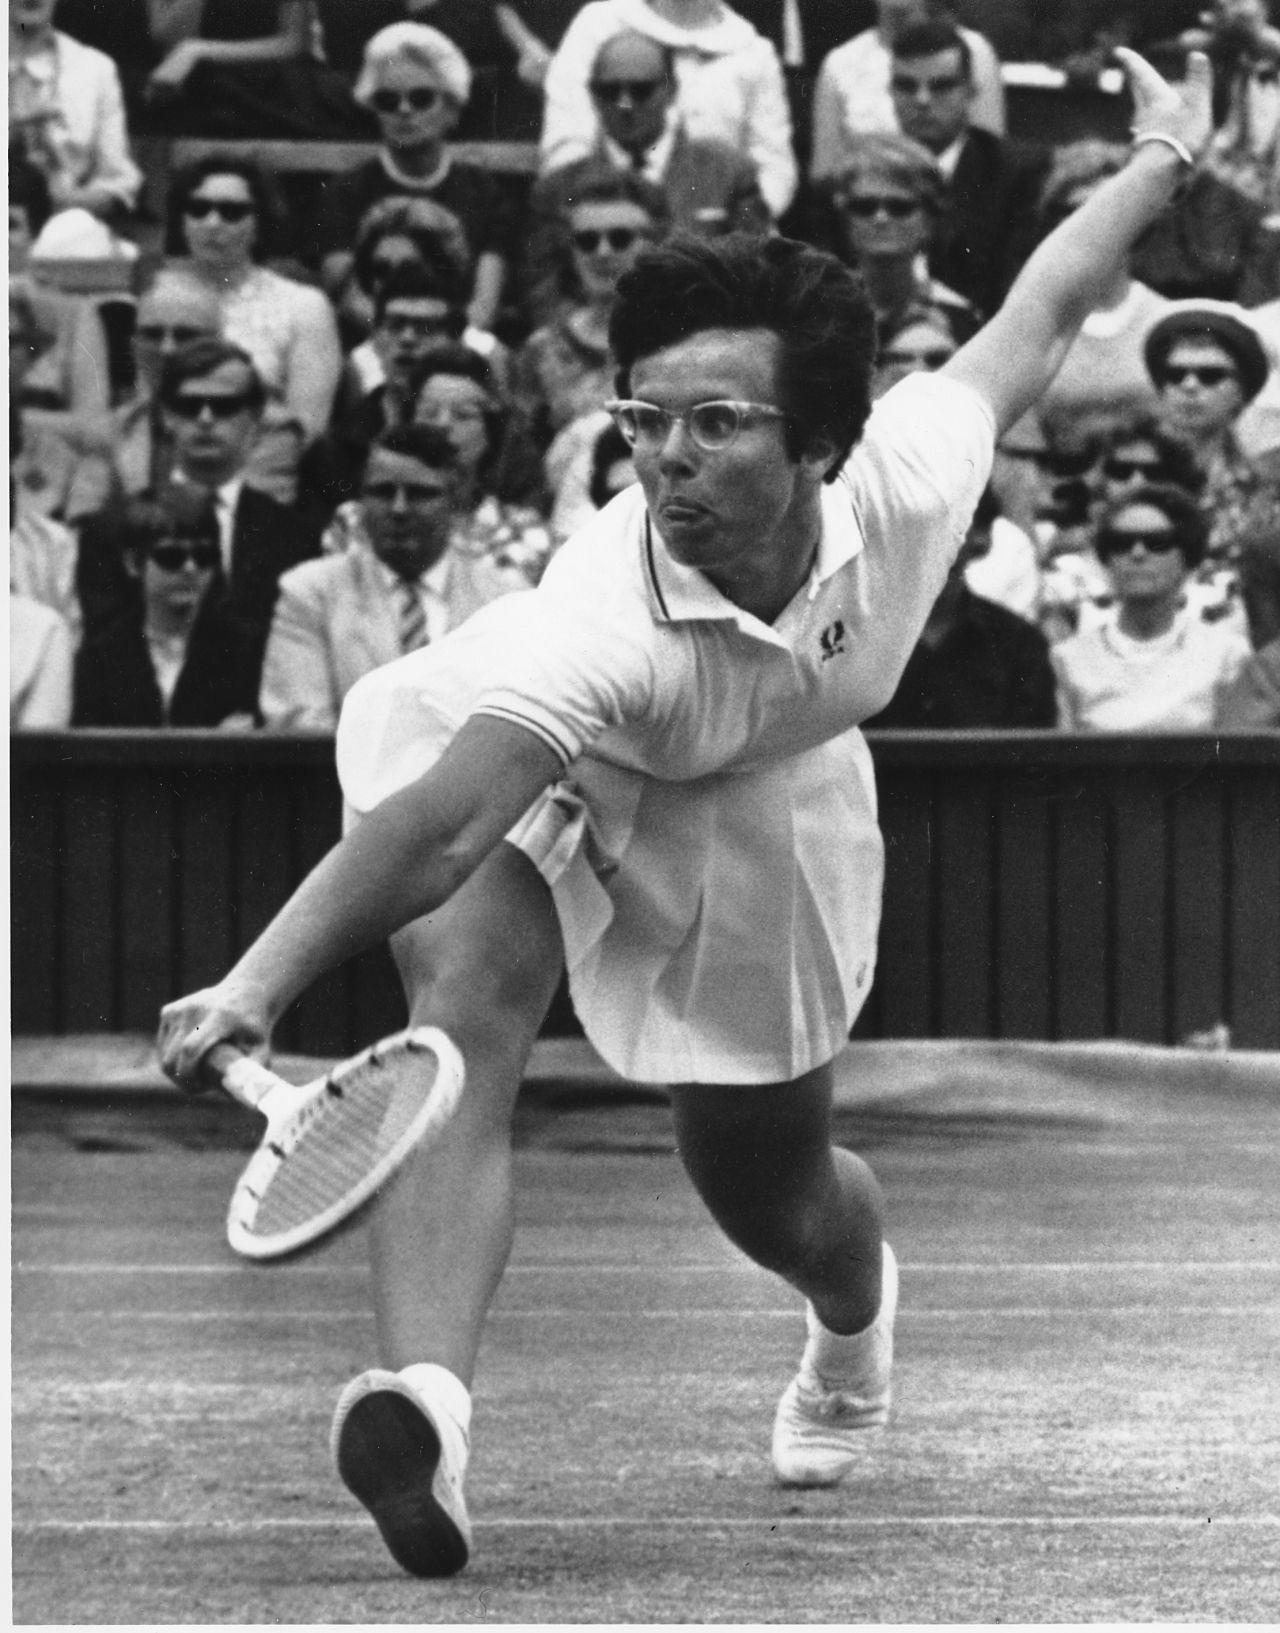 Billie Jean King - Former World No. 1 professional tennis player, founder of the Women's Tennis Association and the Women's Sports Foundation